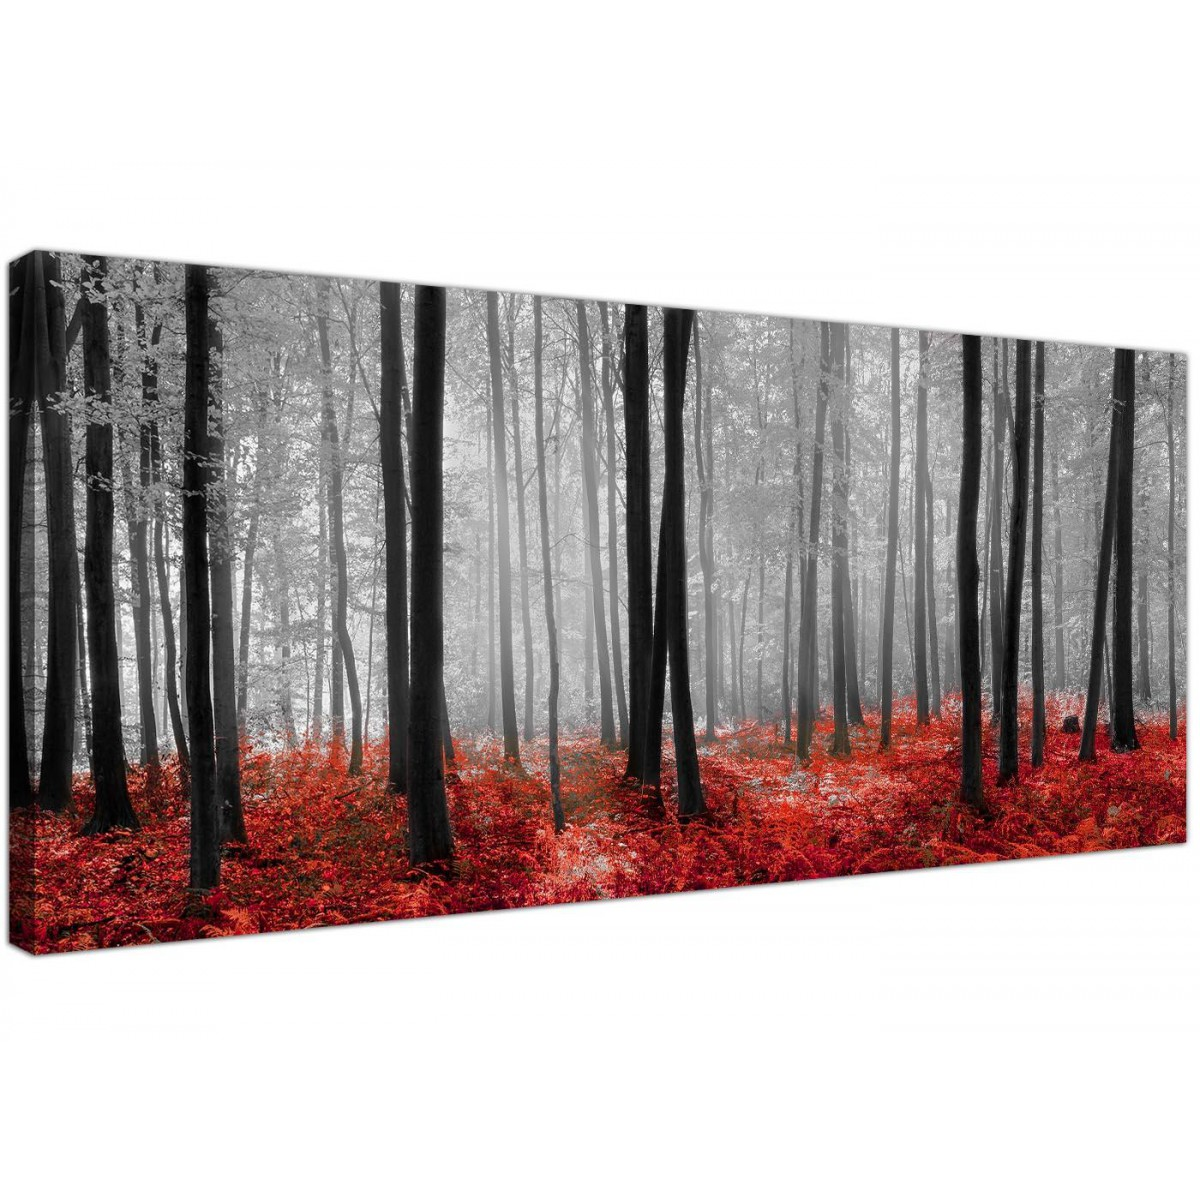 Black And White Canvas Prints Black White And Red Trees Panoramic Forest Canvas Wall Art